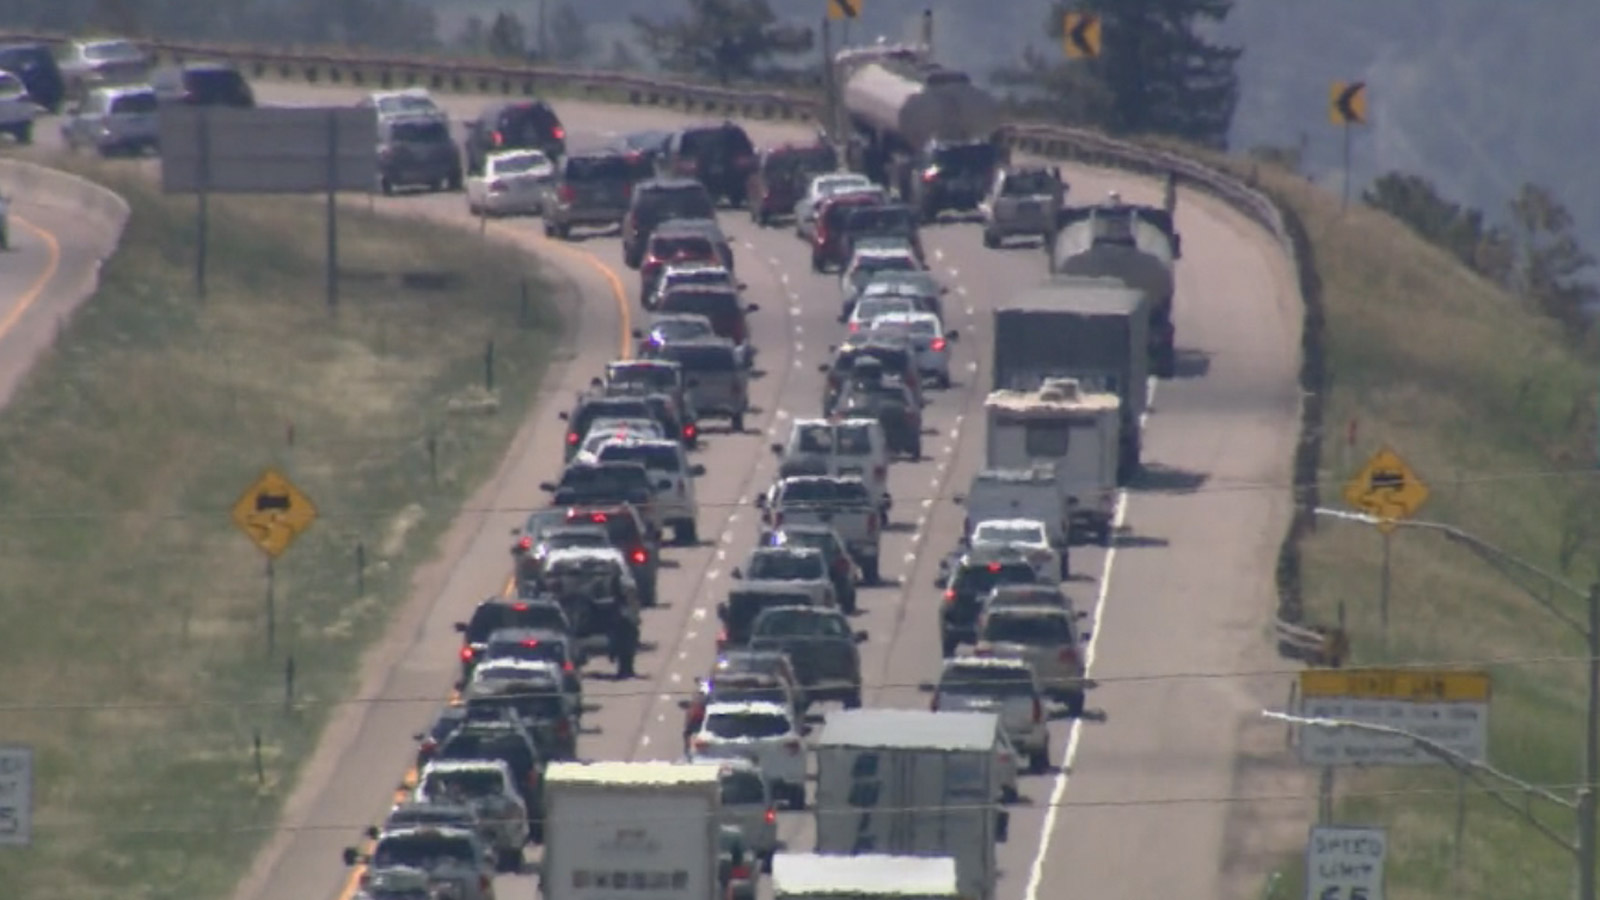 Heavy traffic along I-70 on July 3 (credit: CBS)